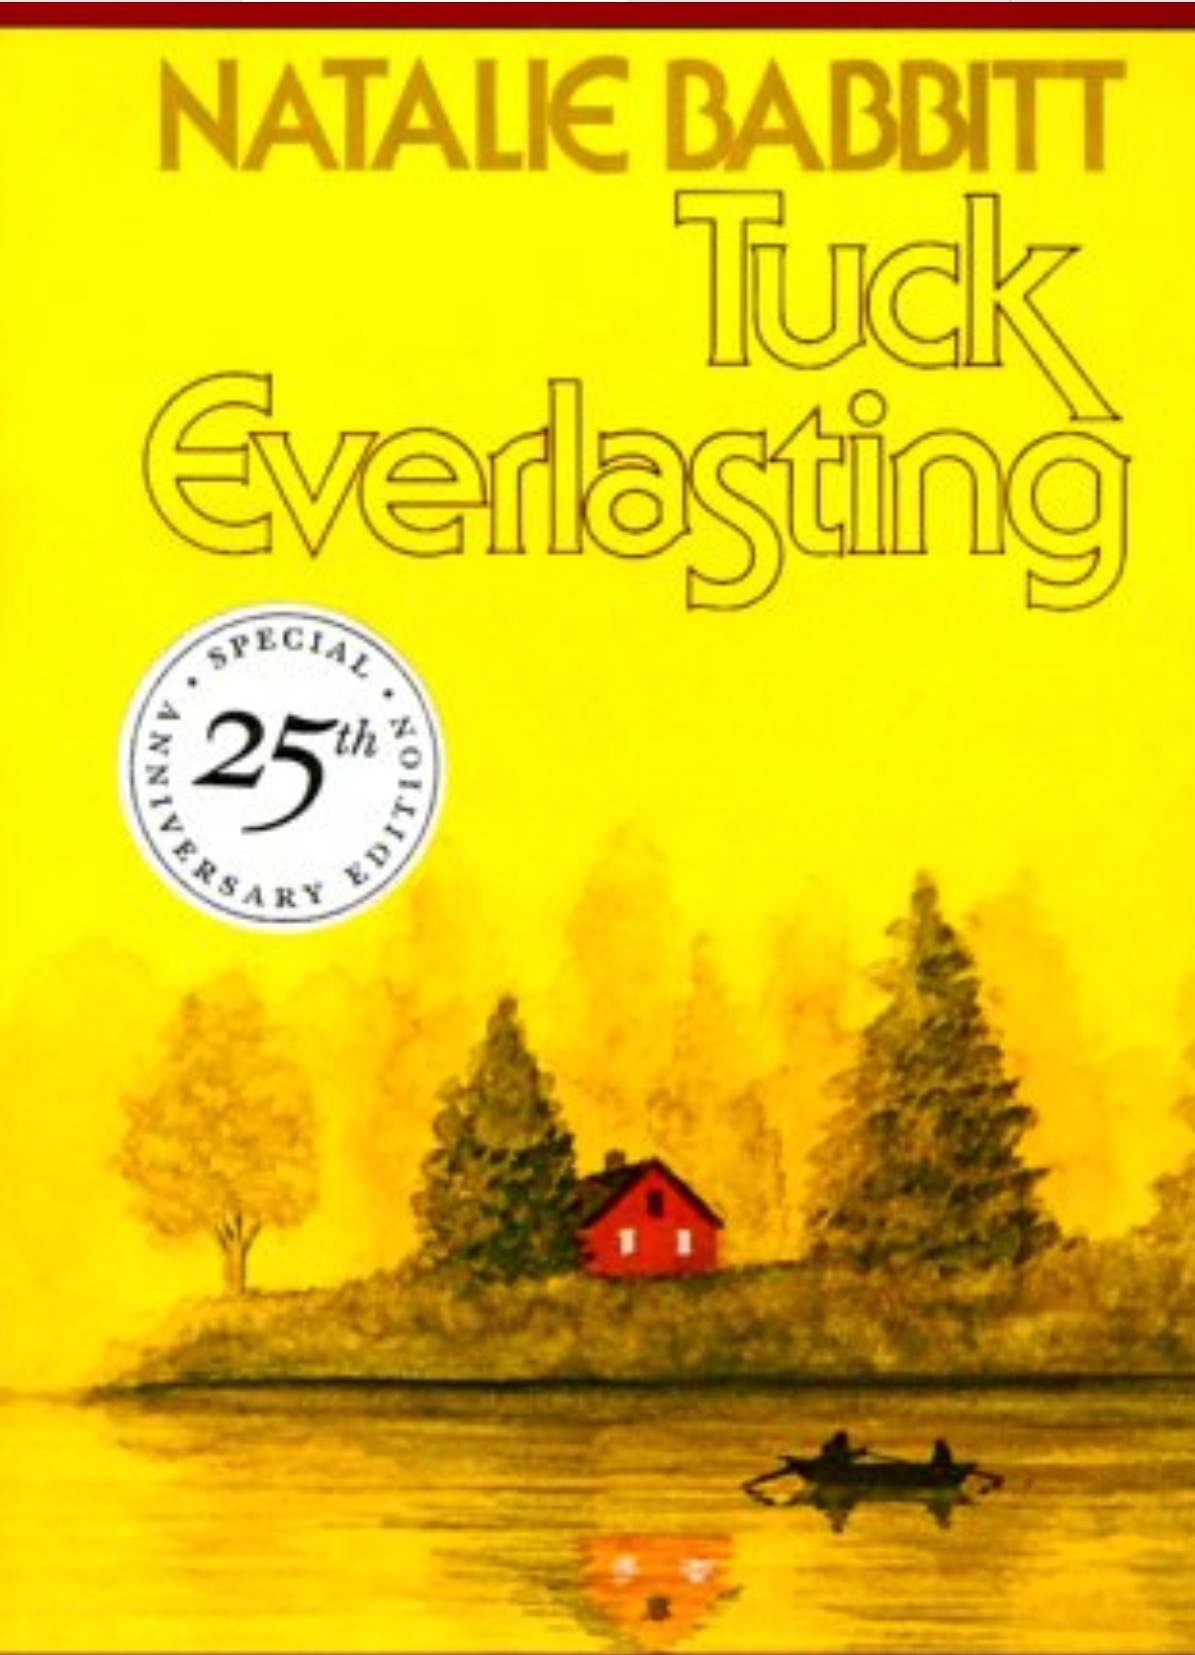 Tuck Everlasting Quotes Setting Location Treegap The Tuck's Home The Woods O